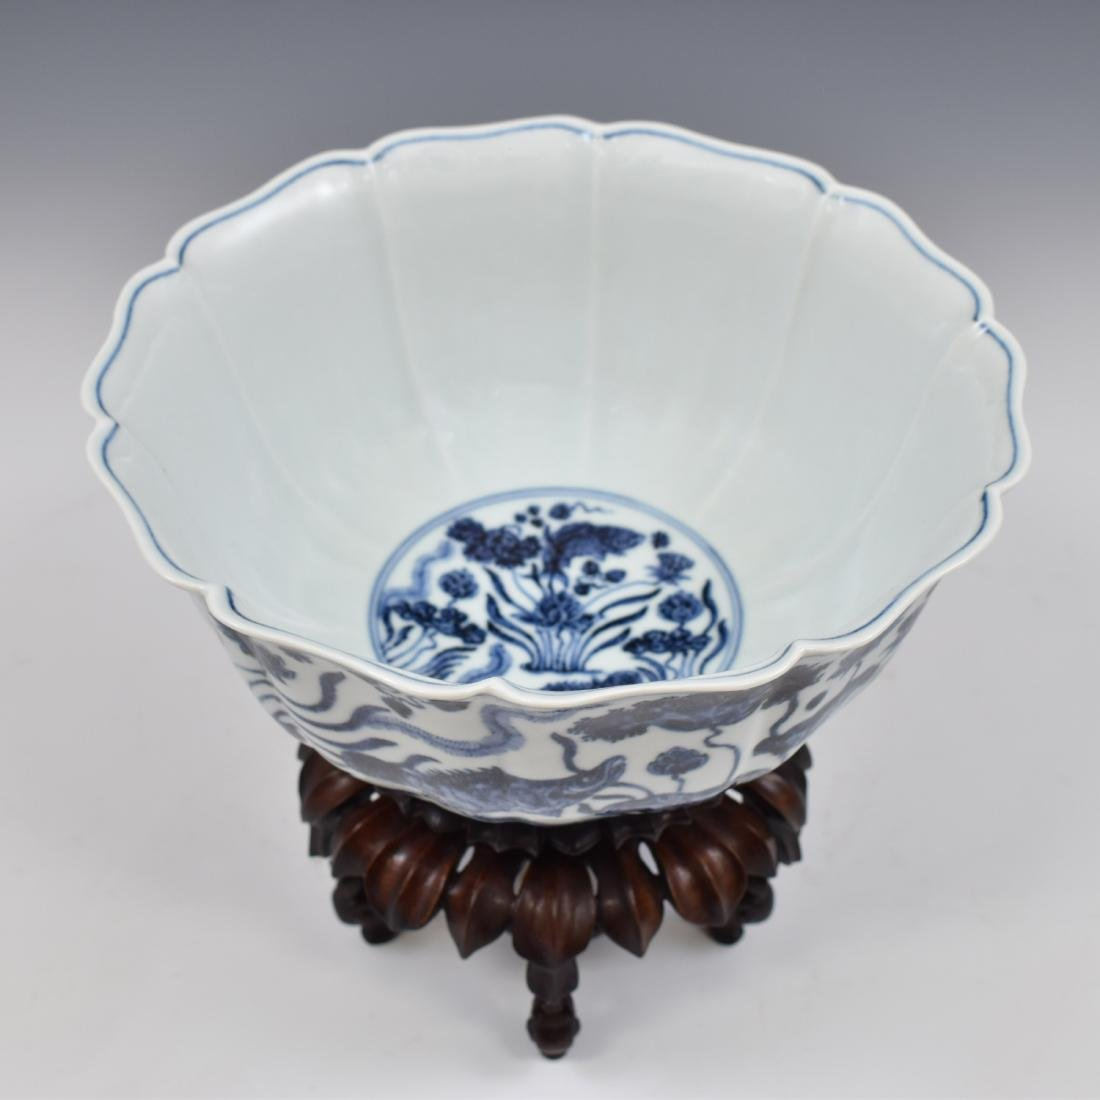 MING BLUE & WHITE CARP MOTIF BOWL ON STAND - 4